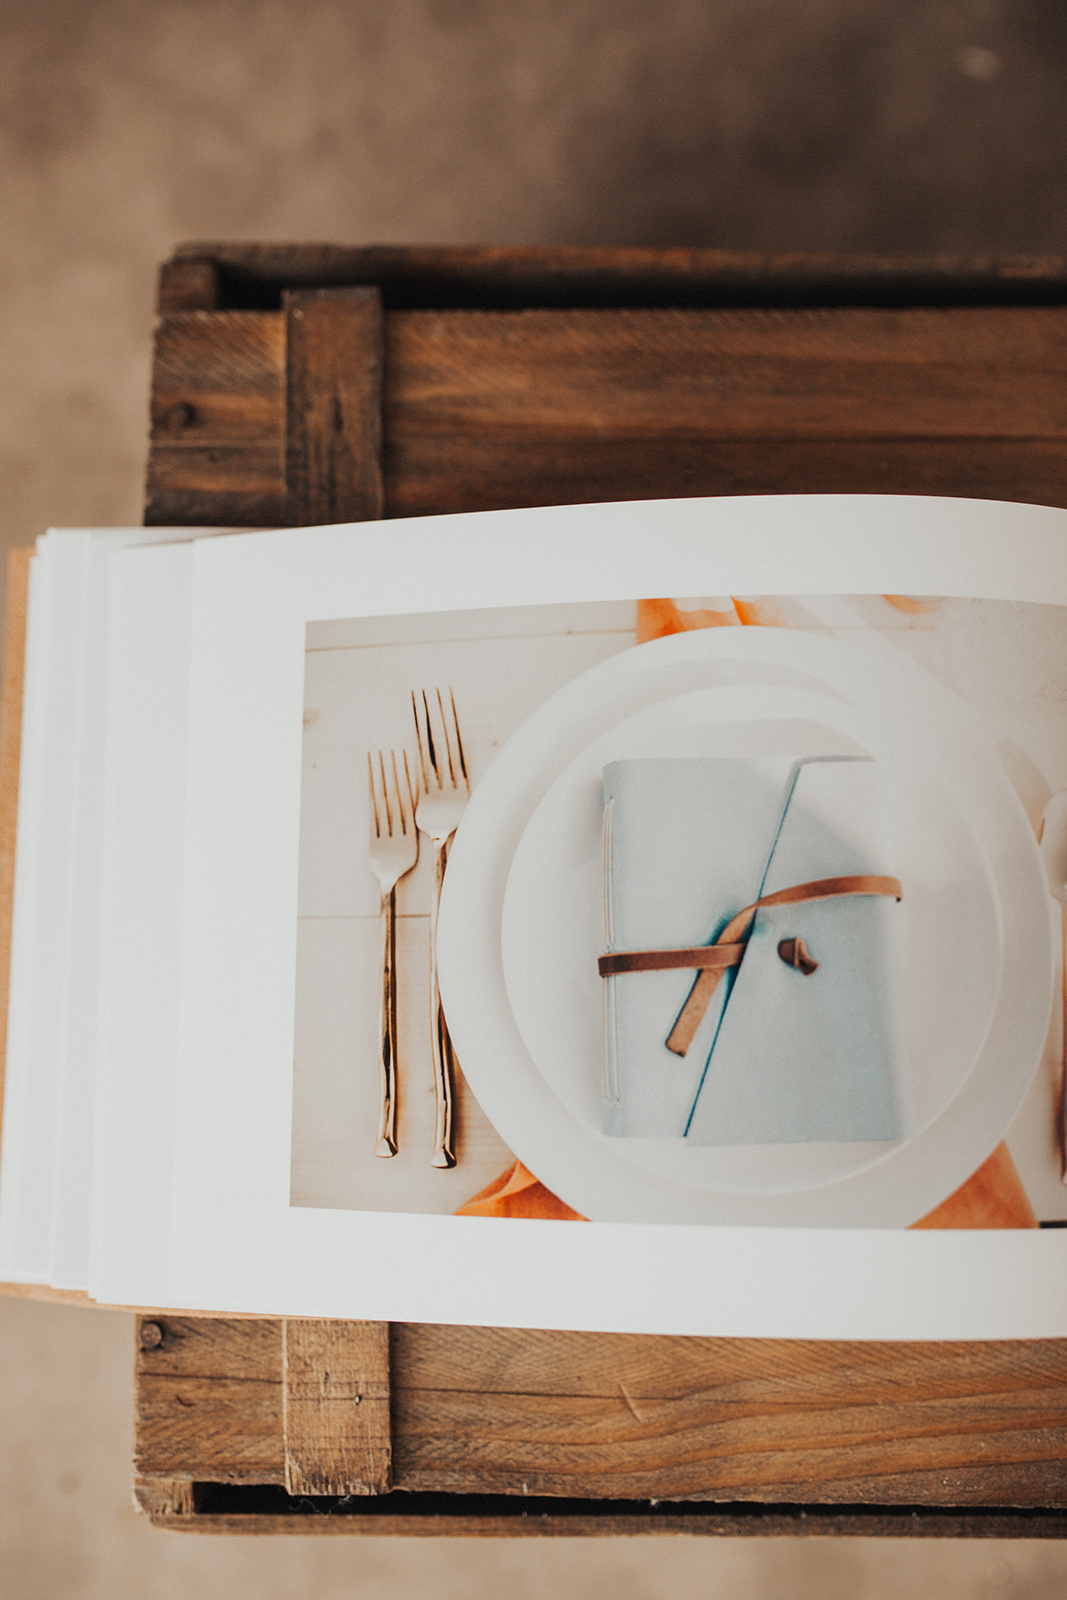 Rosemary & Pine Photography Wedding Albums | An Interview with the creator, Whitney Carmack of Central Oregon